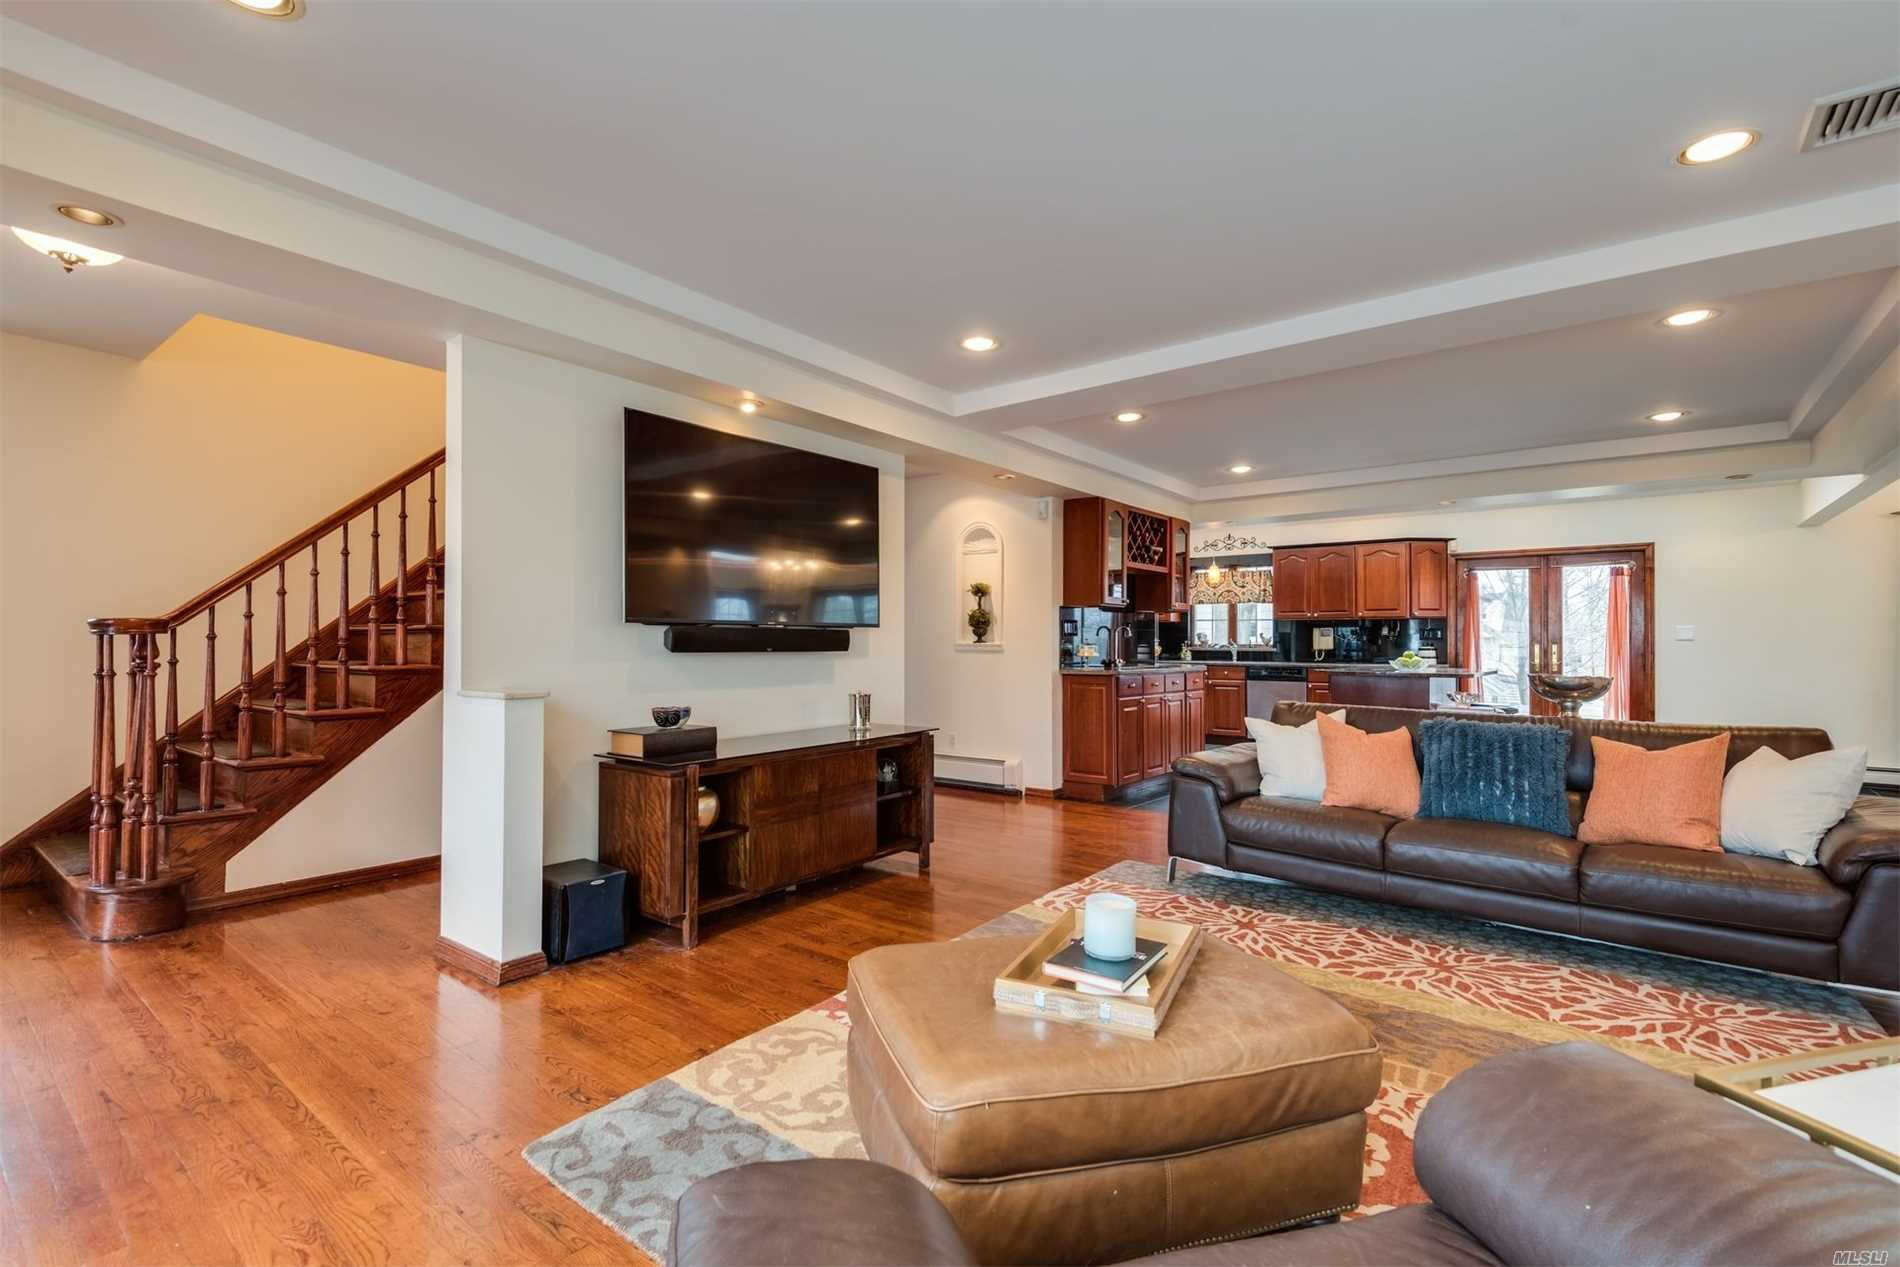 Fantastic, Updated Open-Concept Colonial In The Heart Of Manhasset With Private Rear Yard. Meticulously Maintained With Updated Kitchen And Baths. Live Today's Lifestyle - Entertain In The Open Floor Plan. Close To Town, West Of The Lirr Platform, The Manhasset Ms/Hs Campus, Playground, Library, Restaurants, Shops. Whole House Generator. Low Taxes!.